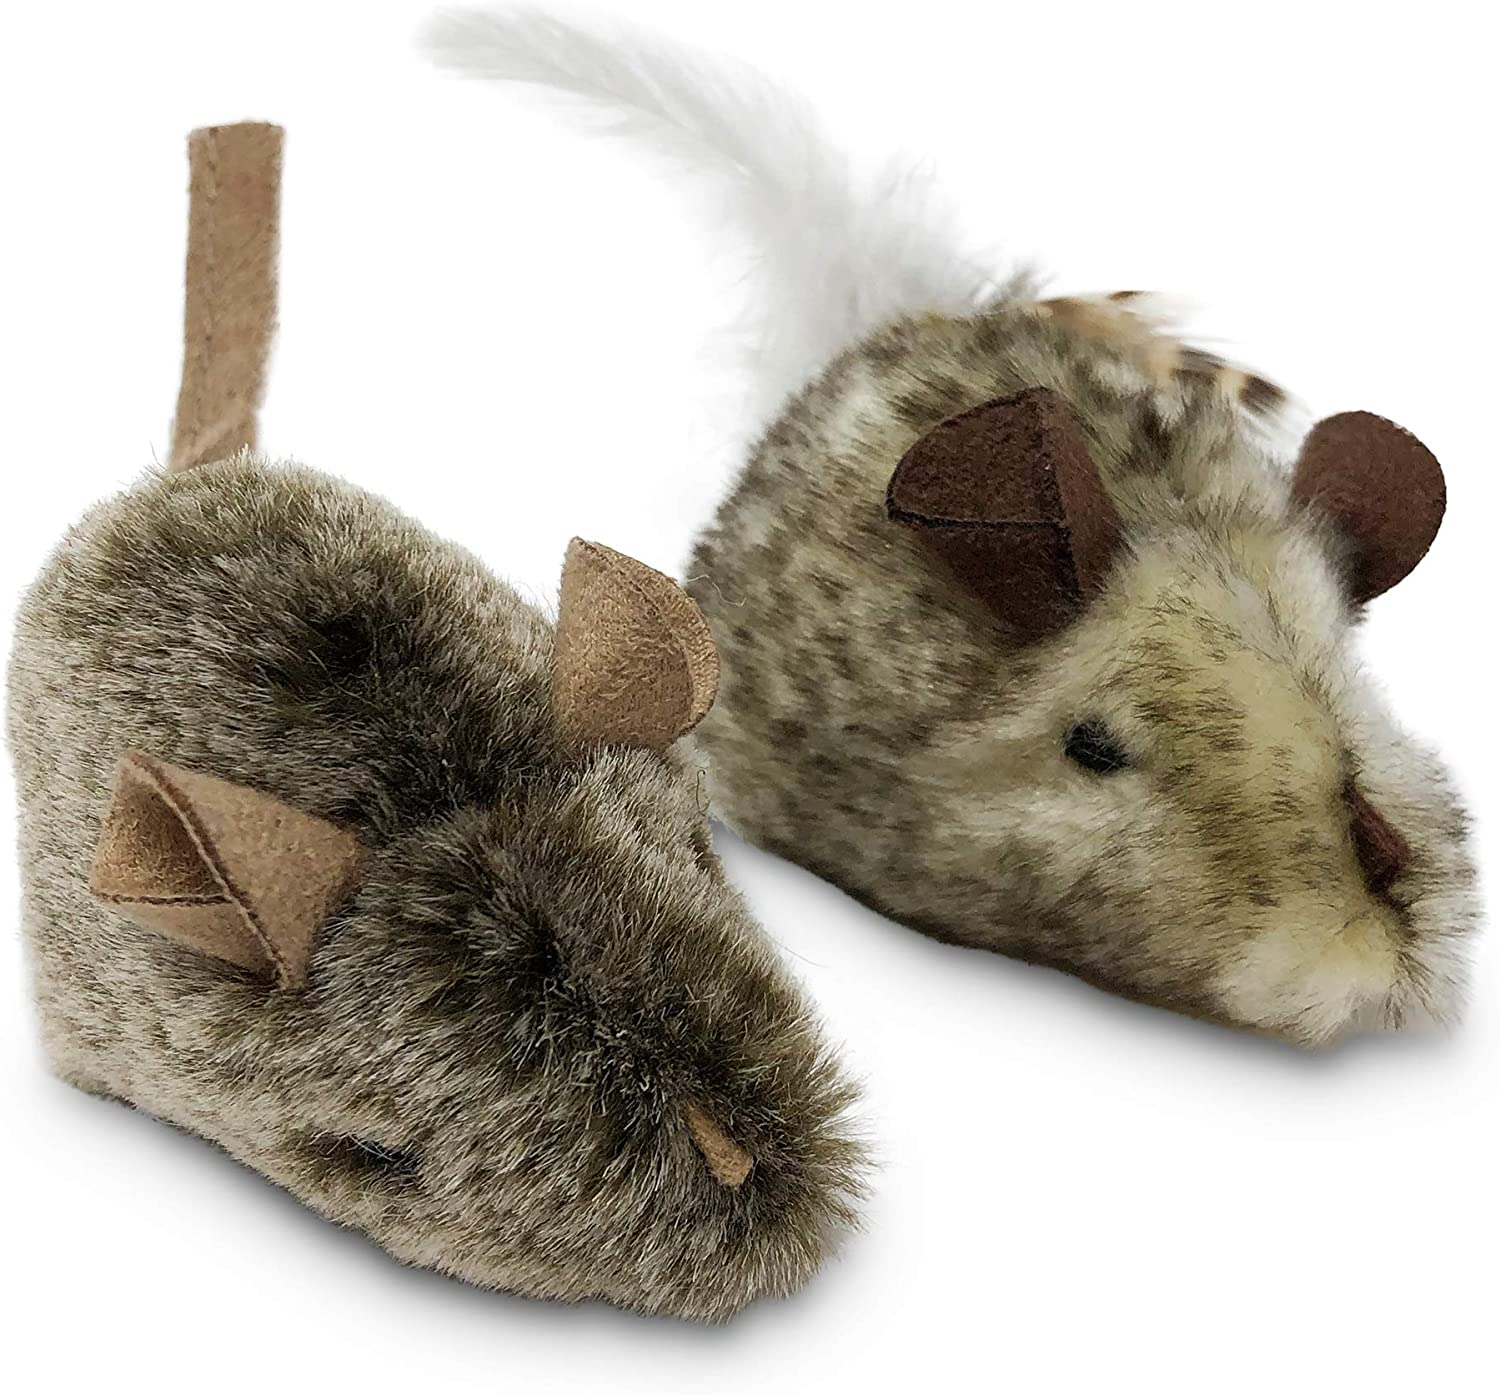 OurPets Play-N-Squeak Twice the Mice Cat Toy, 2pc (Interactive Cat Toy, Catnip Toy, Catnip Toys for Cats, Real Mouse Electronic Sound, Catnip, Cat Toys) : Pet Mice And Animal Toys : Pet Supplies